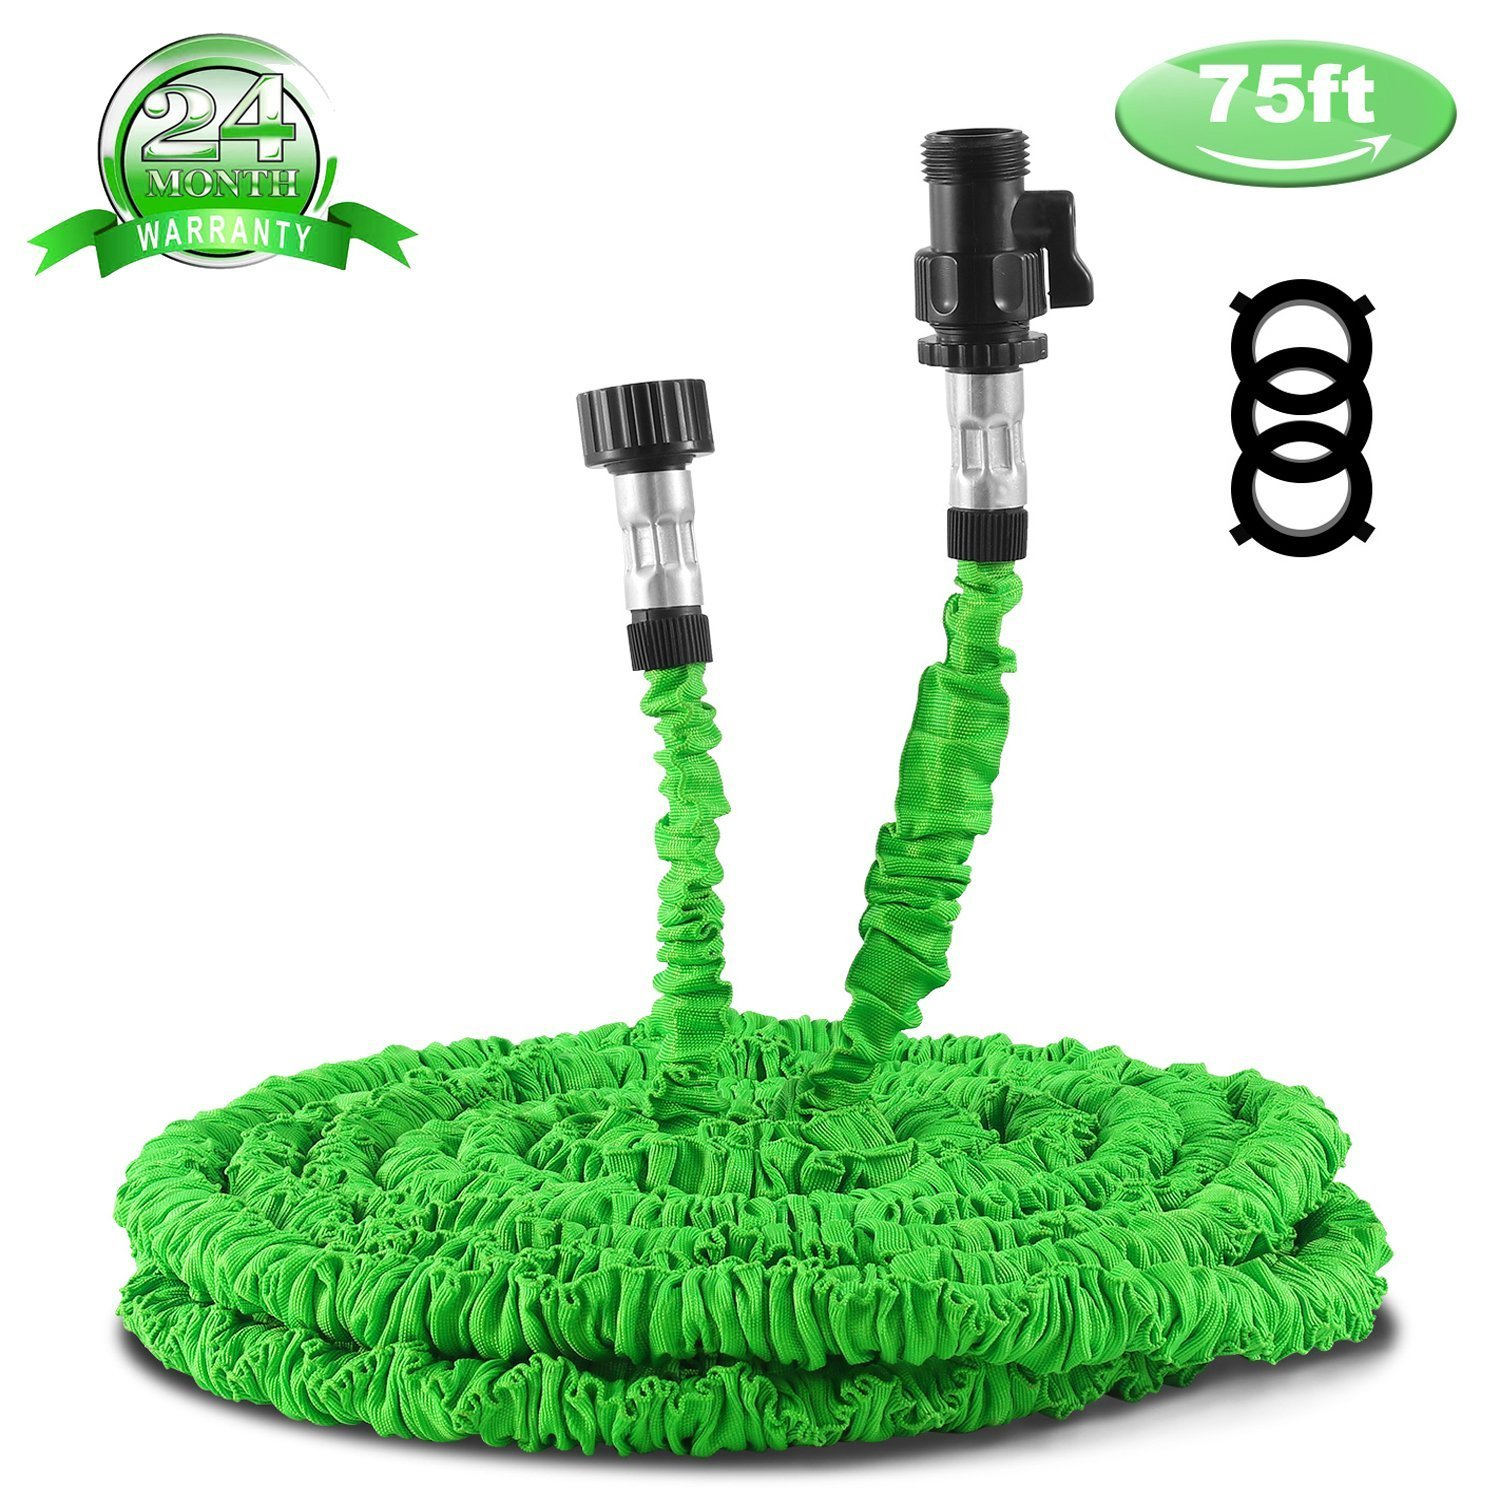 Fbest Garden Hose, Expandable Garden Hose, 75ft Expanding Garden Hose Lightweight Durable Heavy Duty Flexible Pressure Washer Water Hose for Car Wash Cleaning Watering Lawn Garden Plants Green